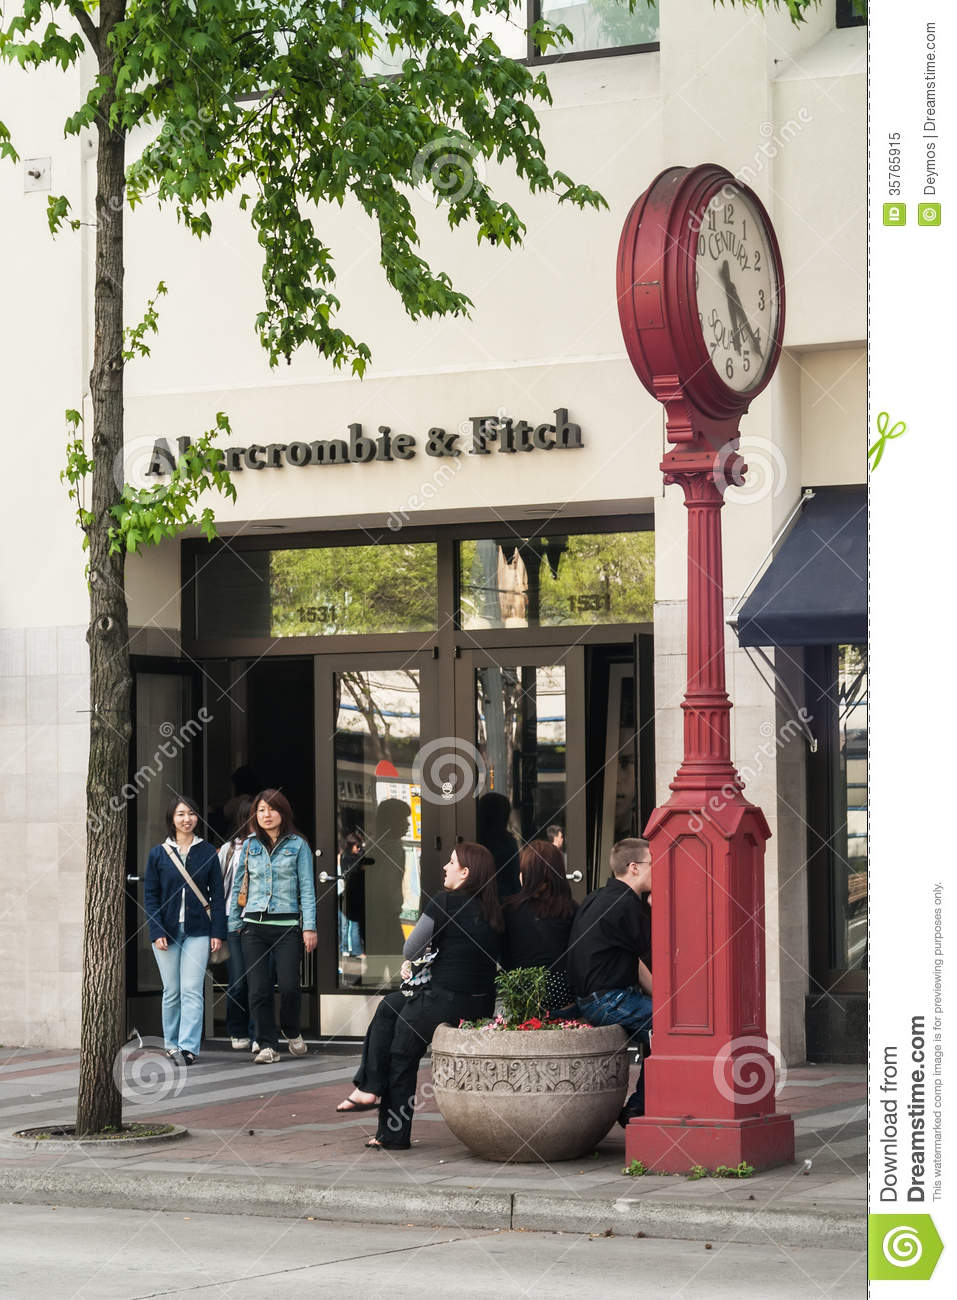 Abercrombie & Fitch store, Seattle, WA